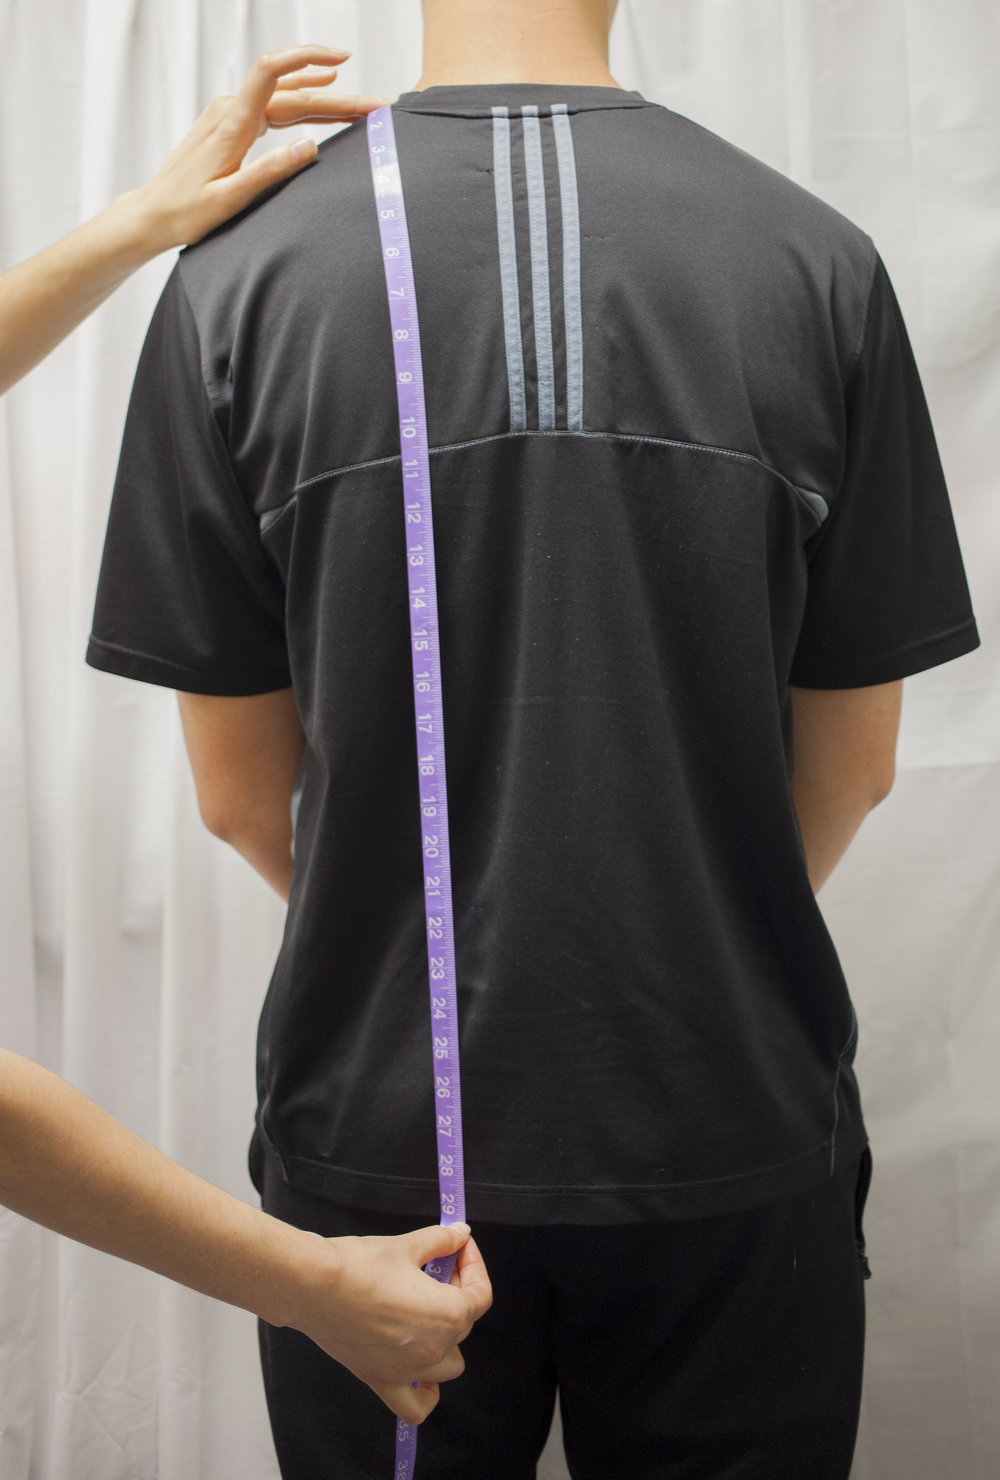 11. Shoulder to Hem (Back)